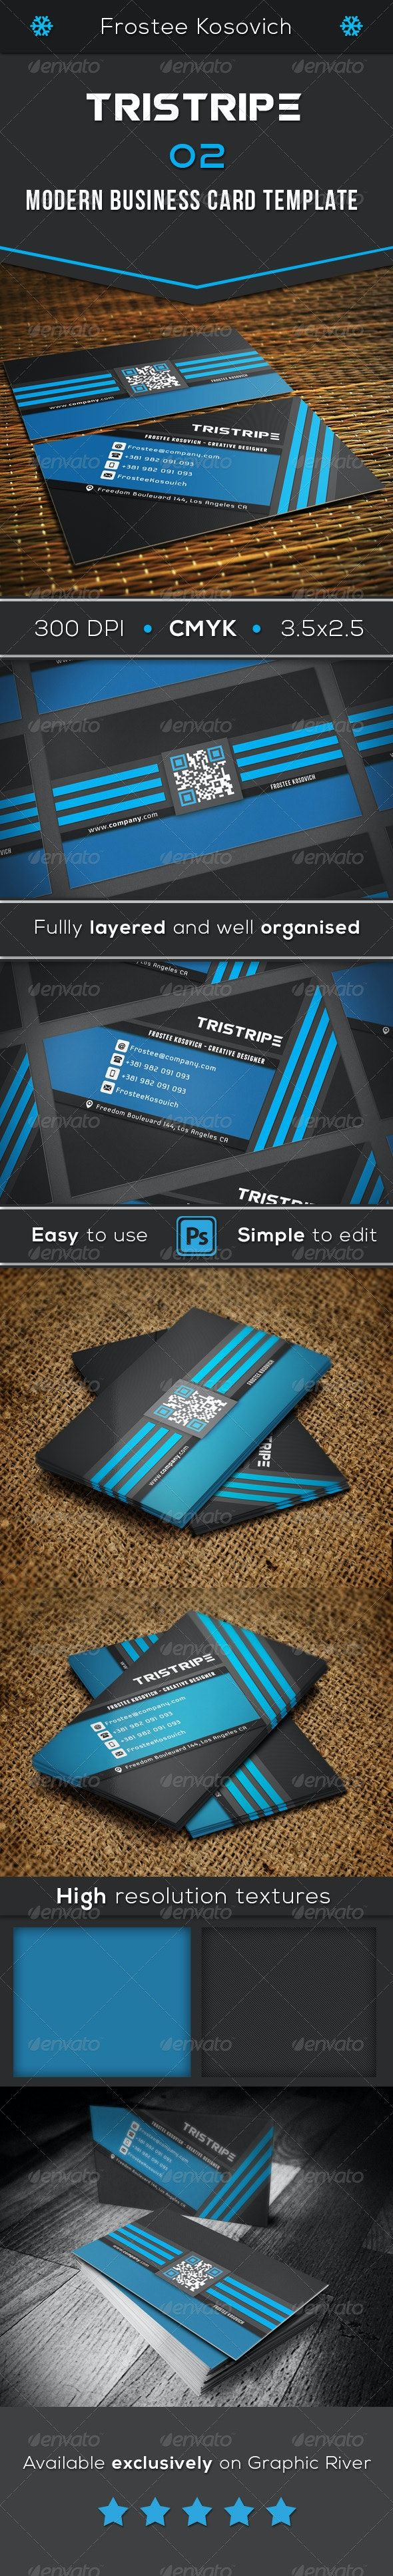 Tristripe Modern Business Card Template 02 - Creative Business Cards